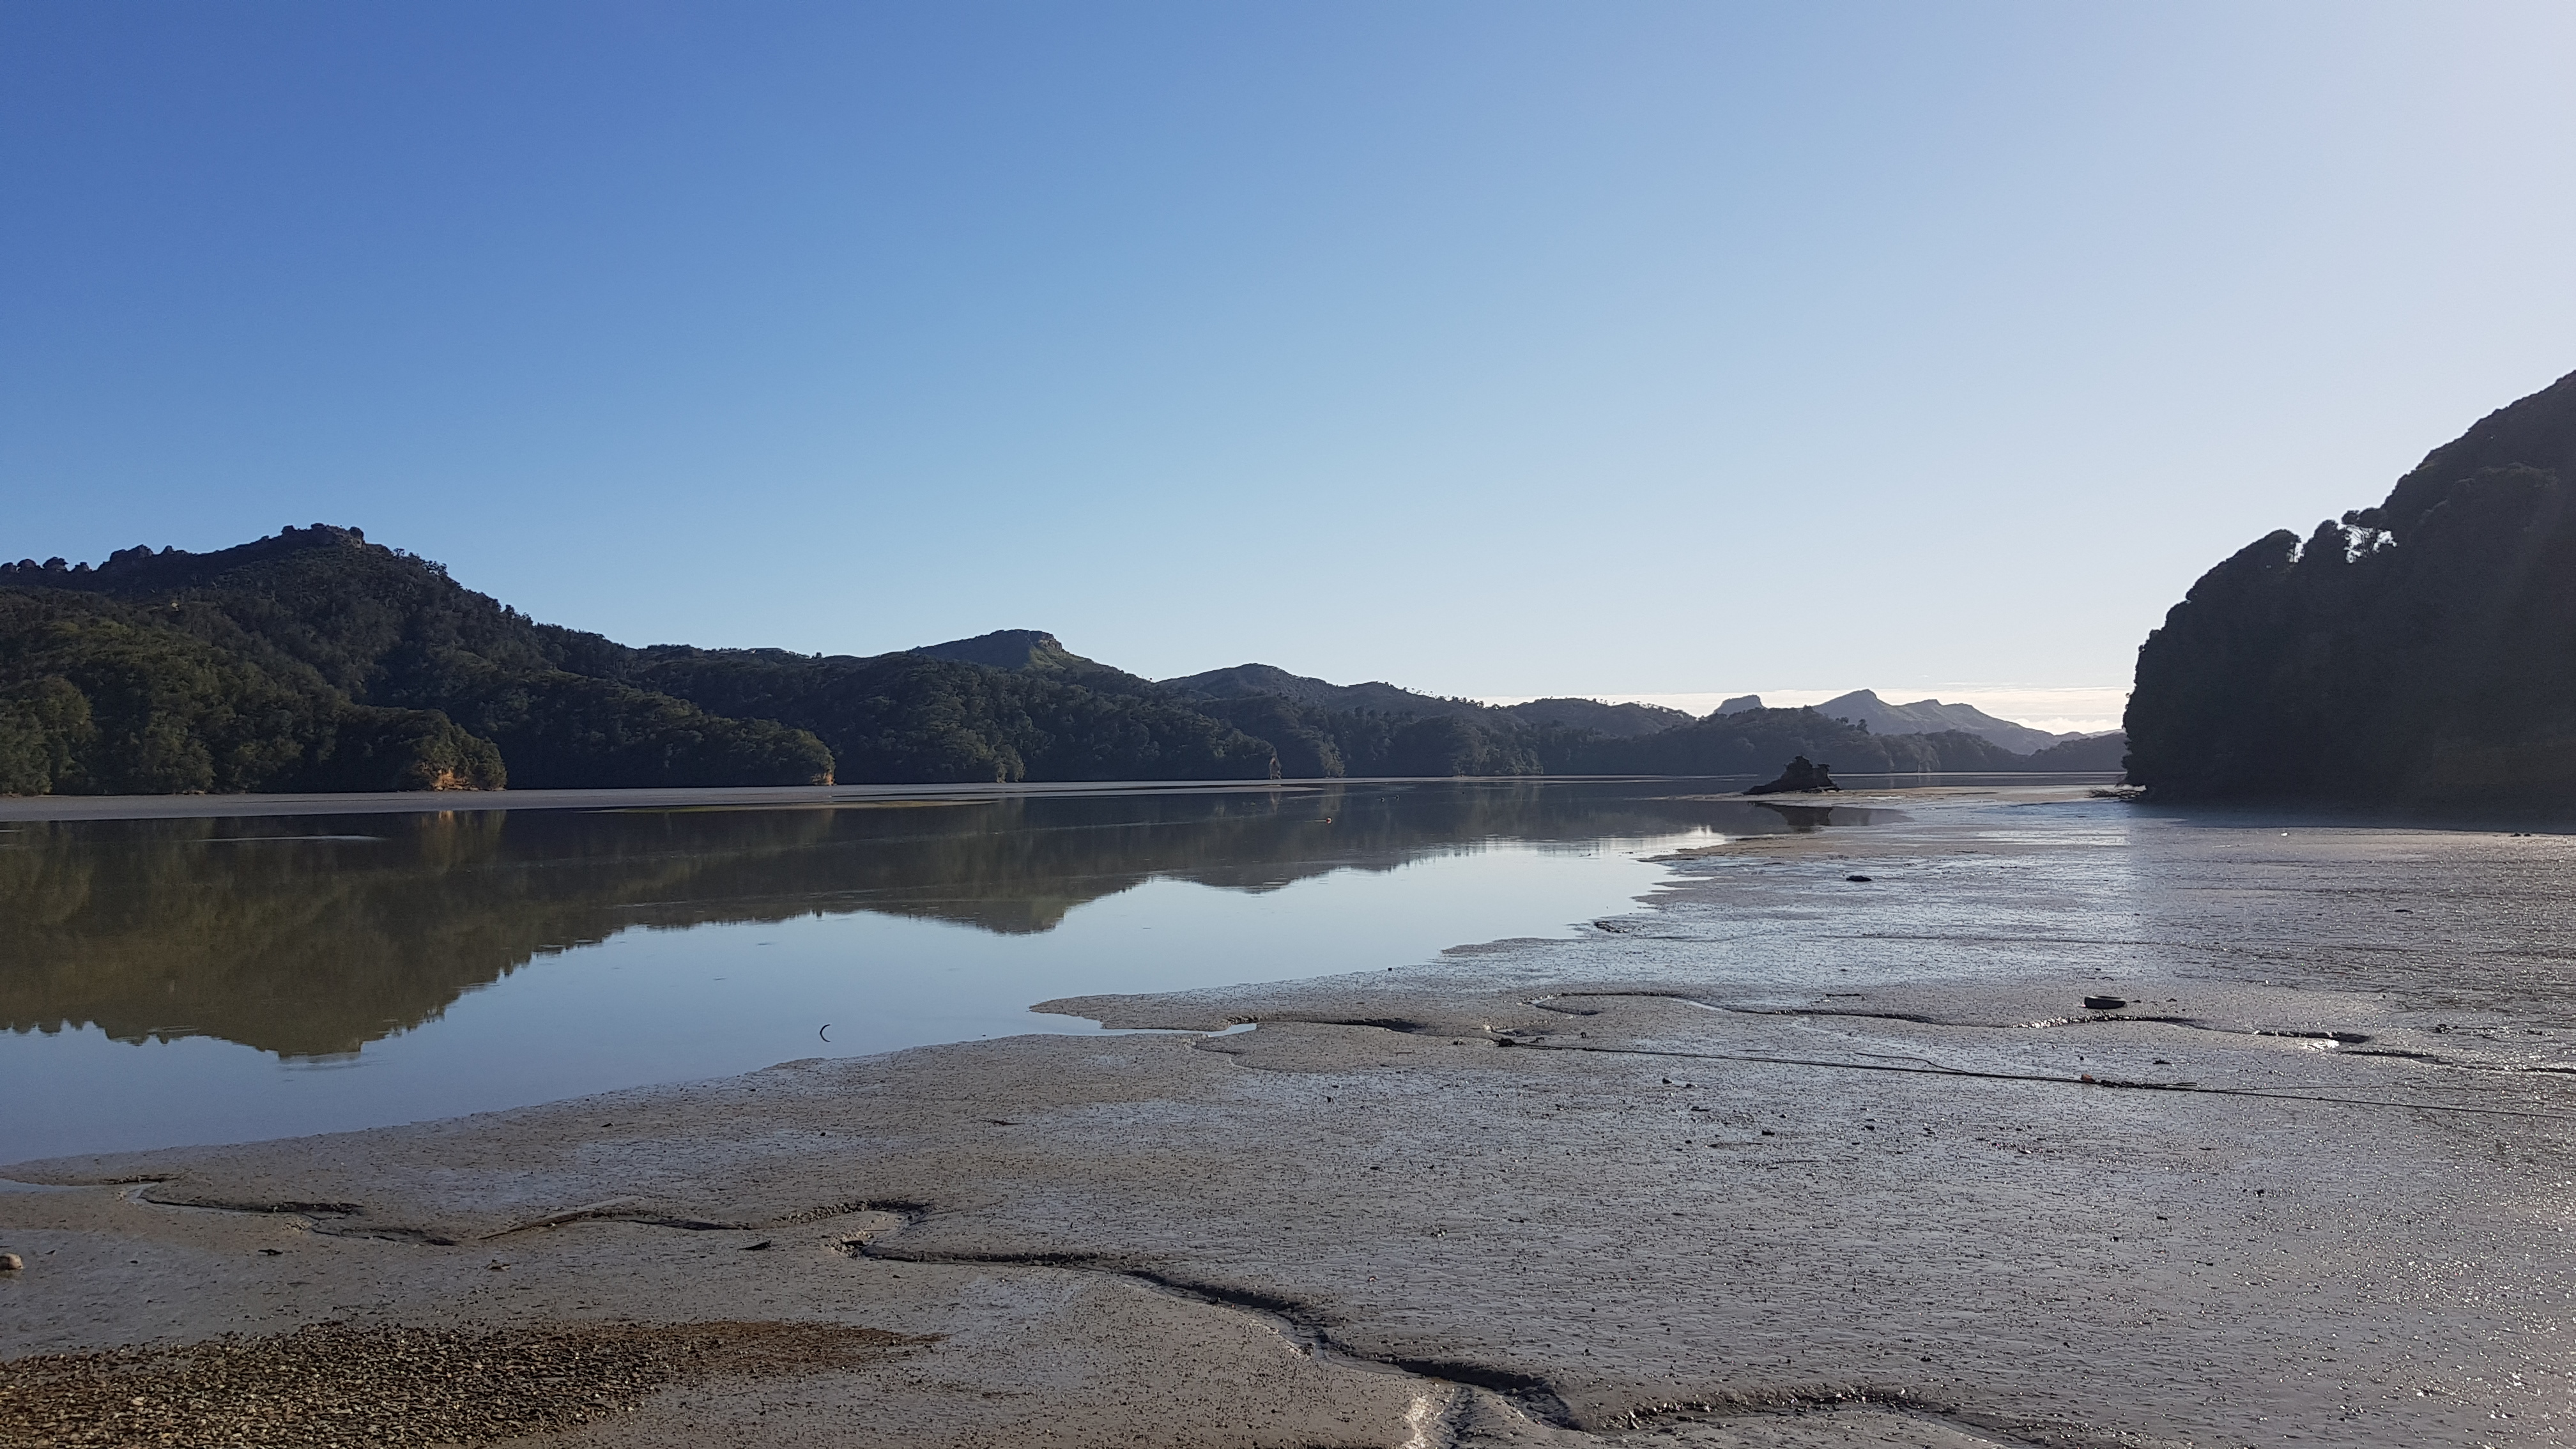 Low tide at Westhaven - Whanganui Inlet